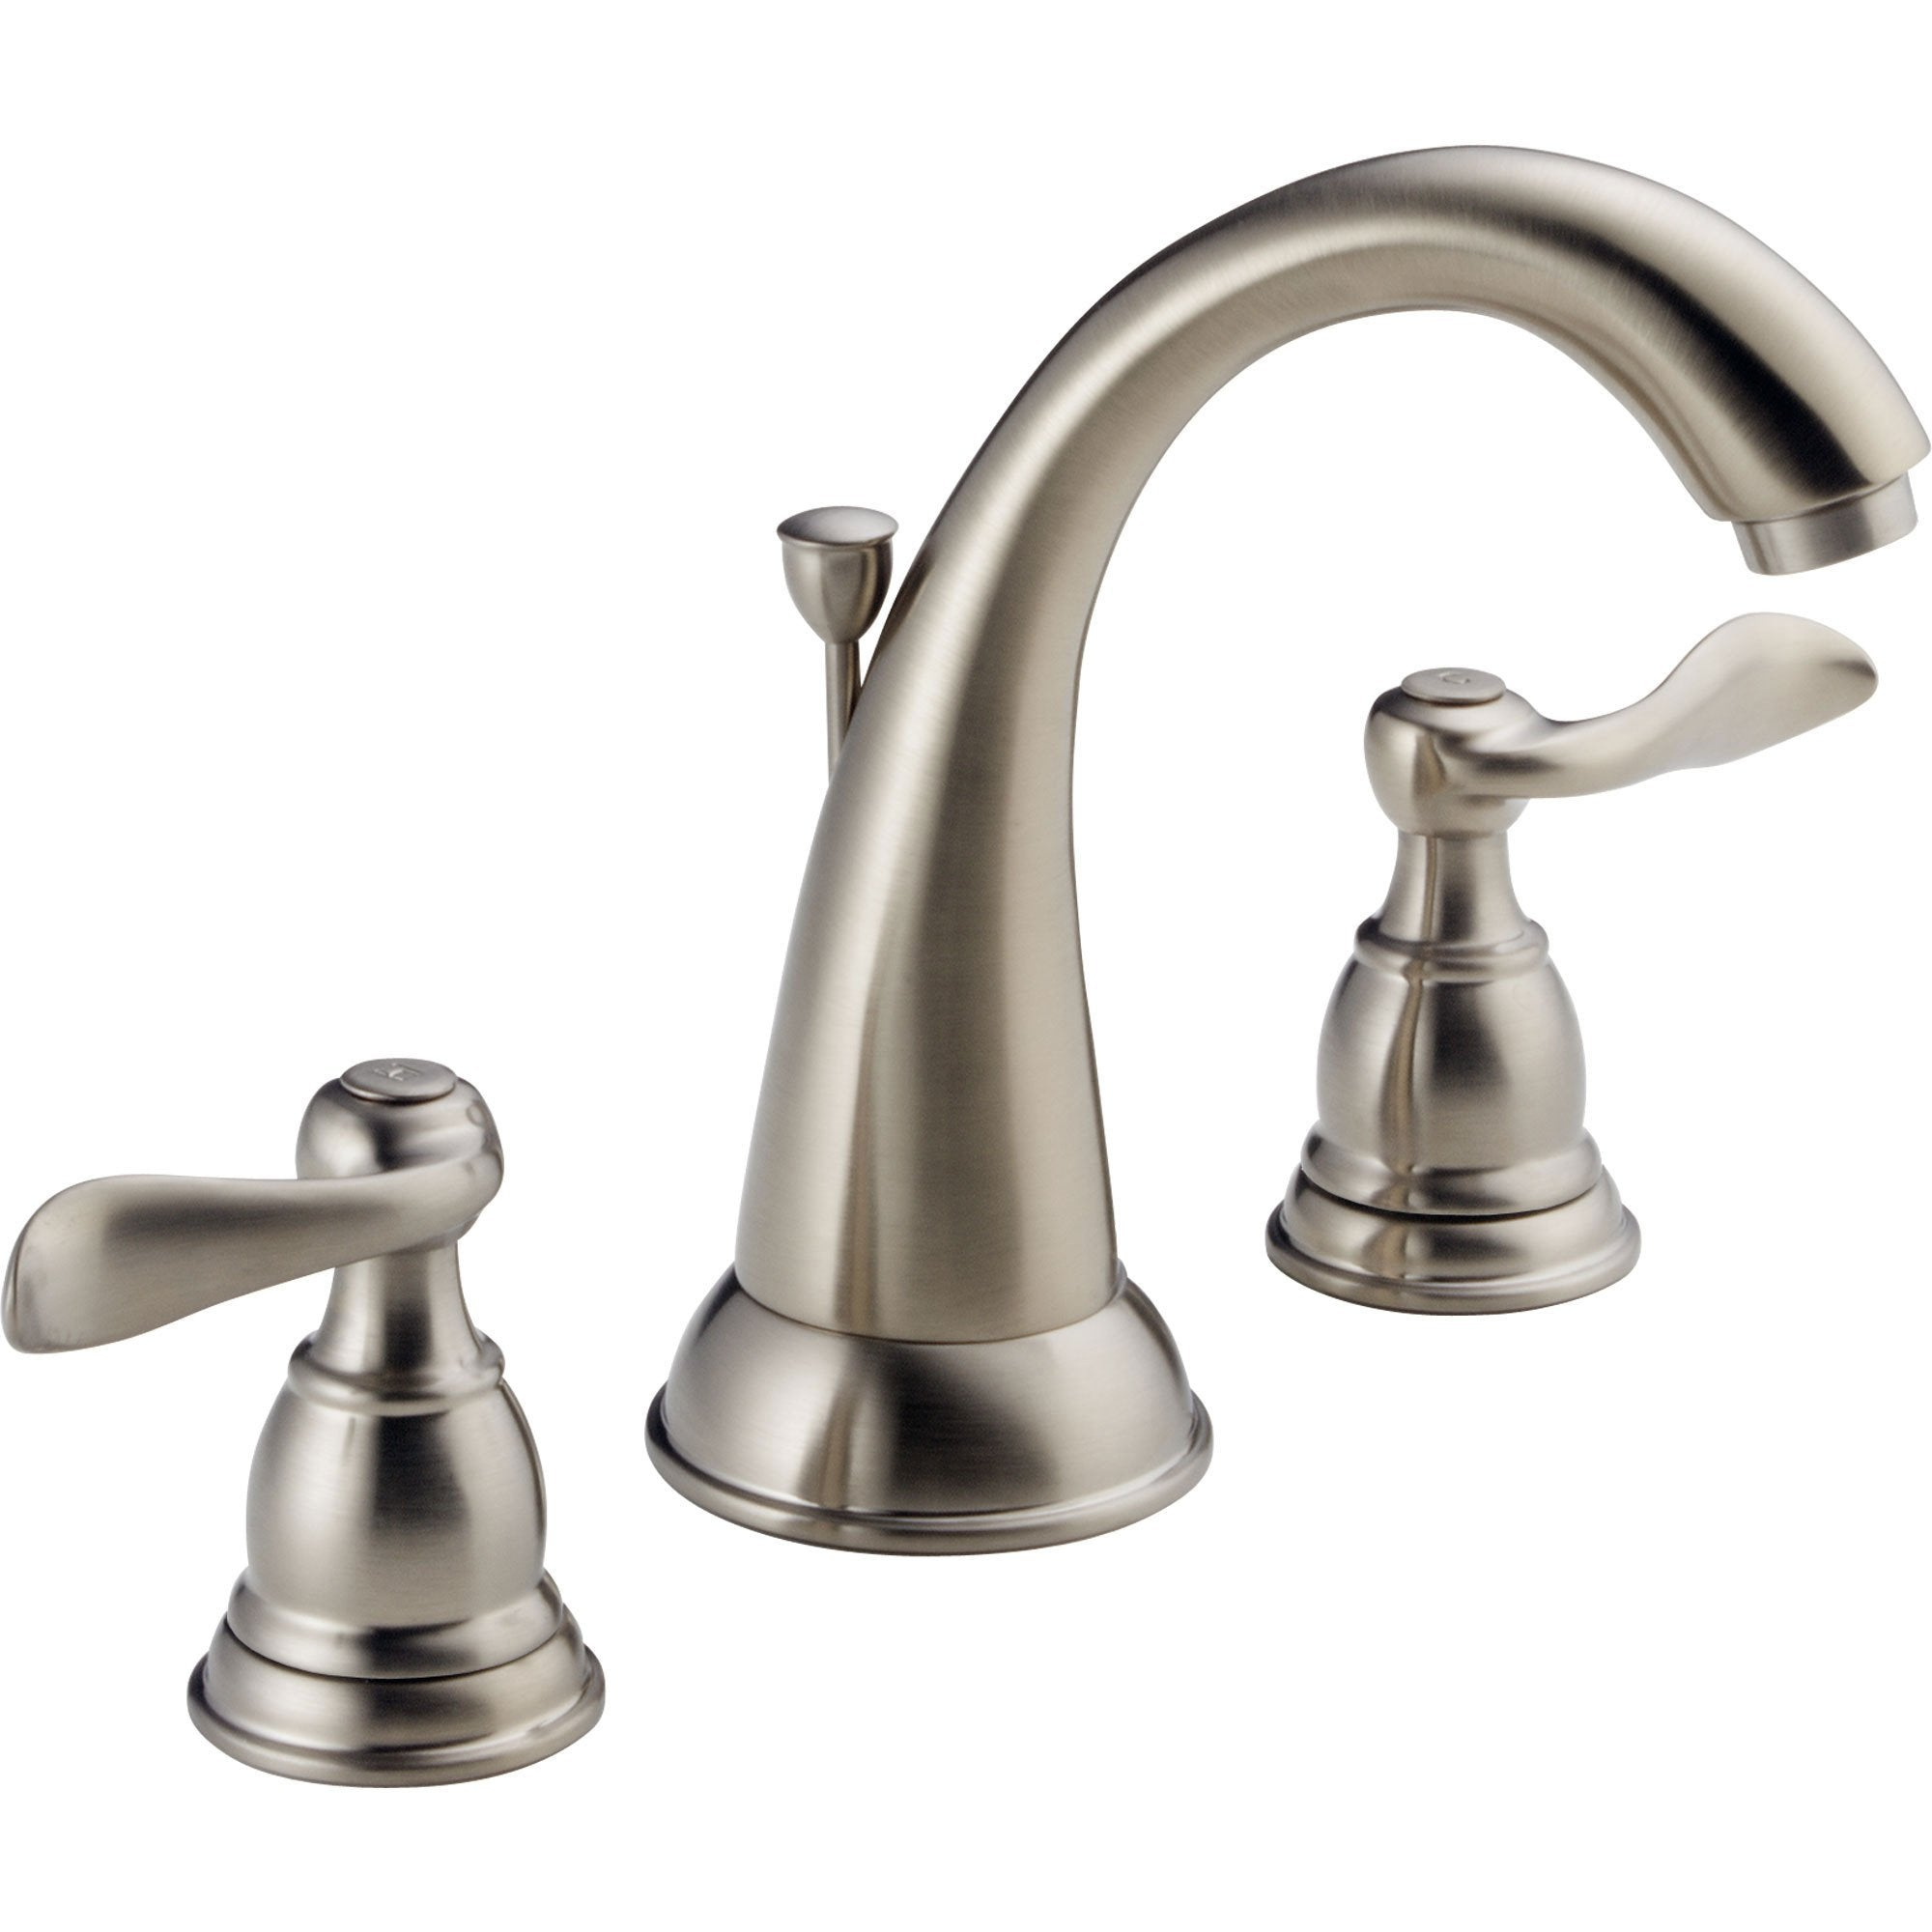 brass faucet lavatory product id bathroom widespread newport large nwp faucets